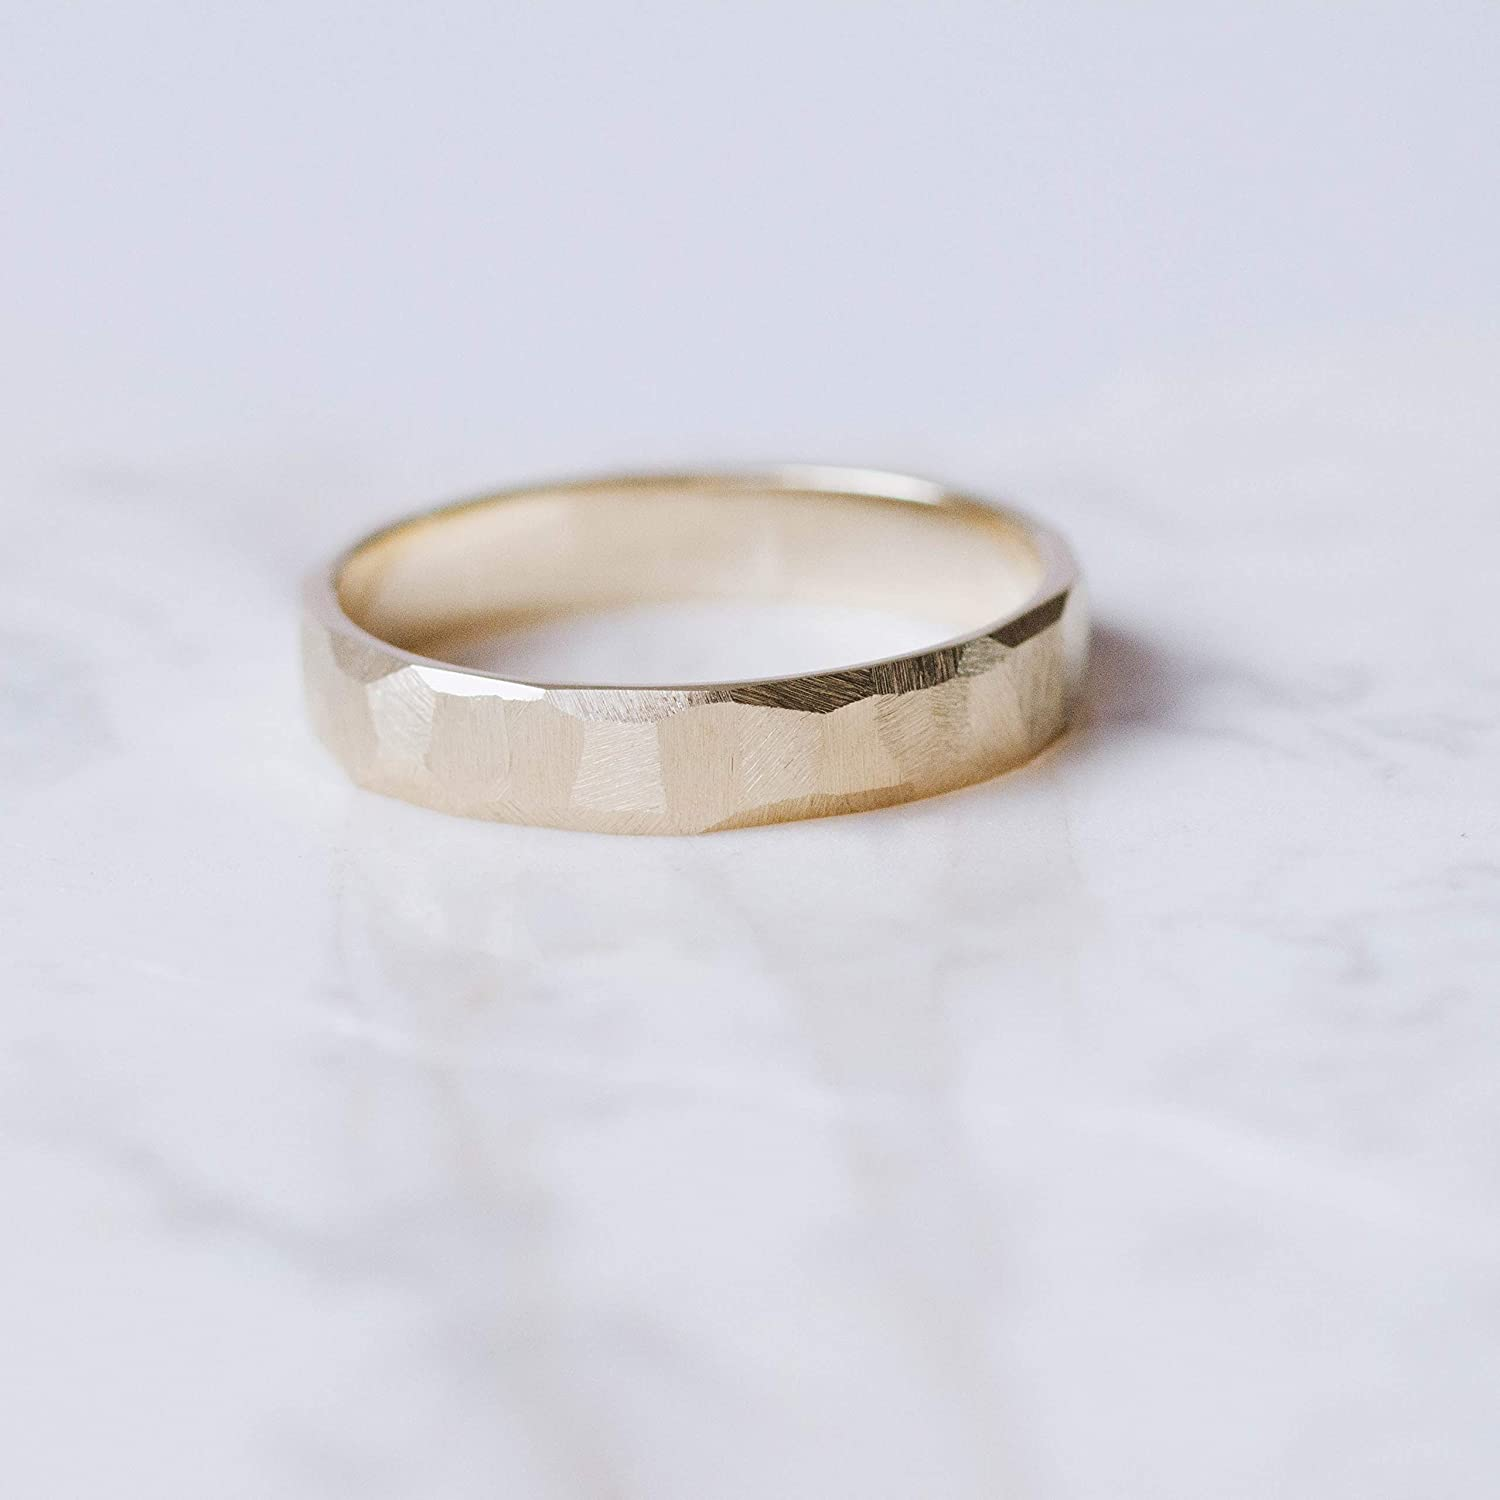 textured wedding band for him her them modern hammered style wedding band set mens or womens wedding band ethical wedding ring by LOLiDE